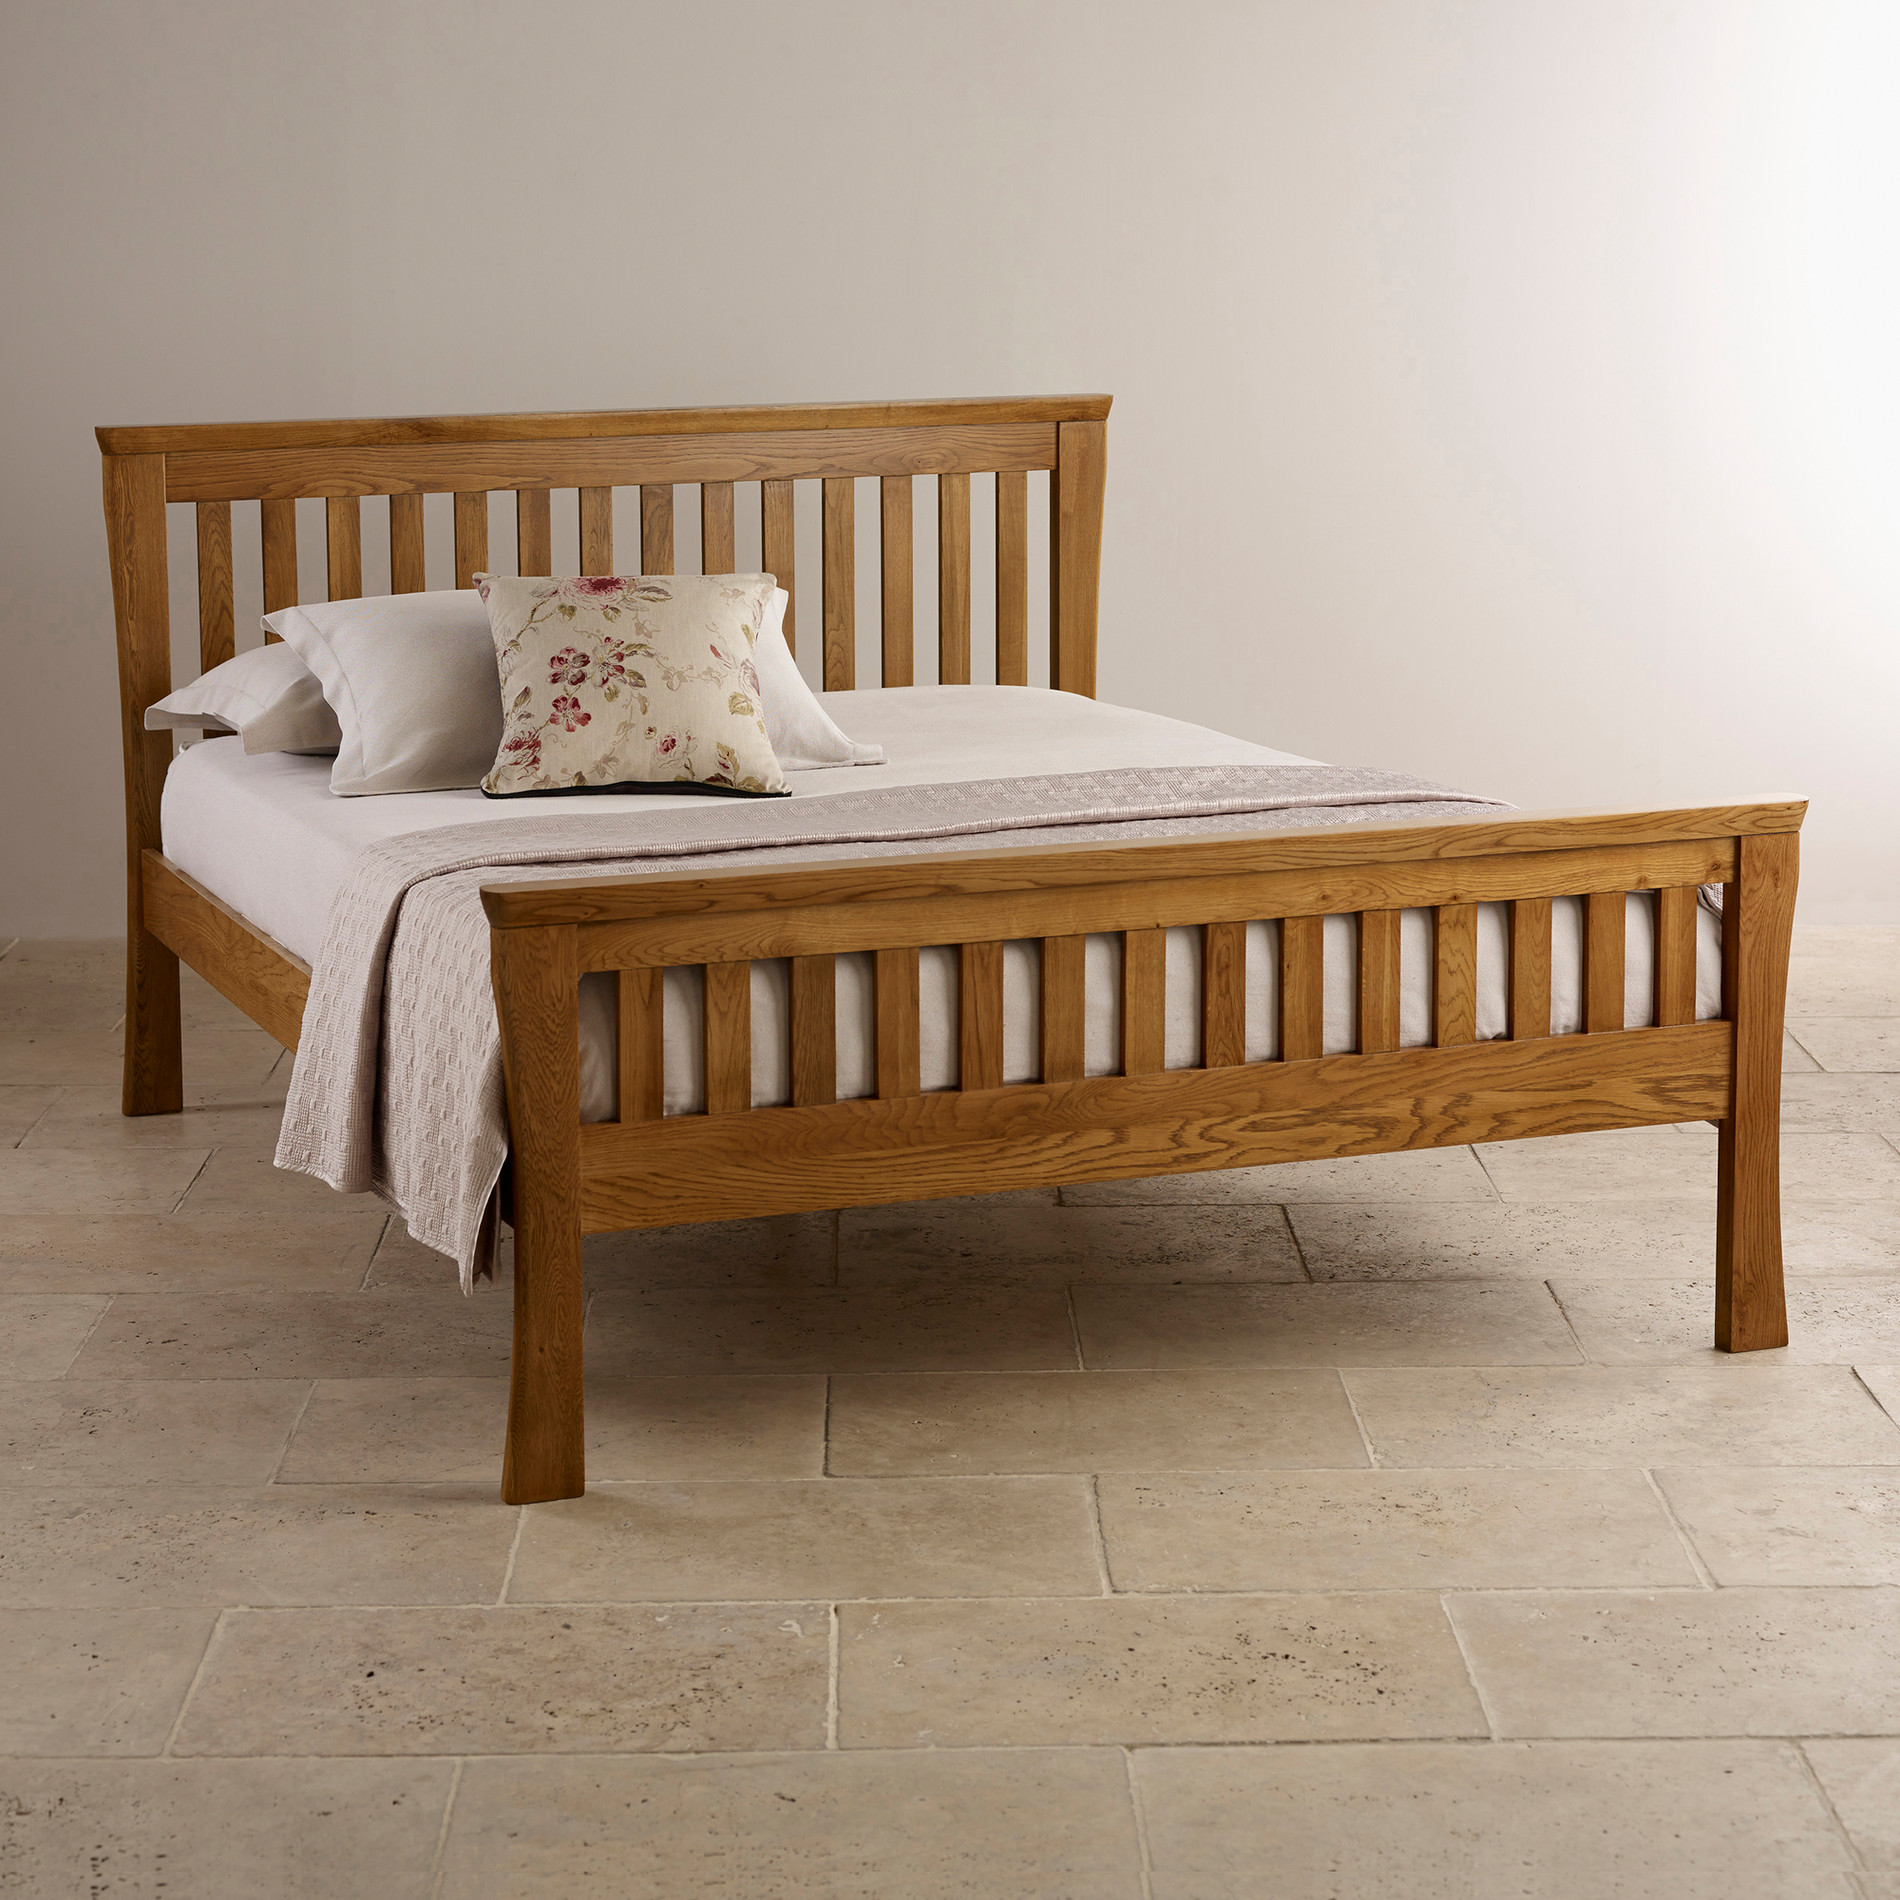 King Size Bed Size Orrick King Size Bed Rustic Solid Oak Oak Furniture Land